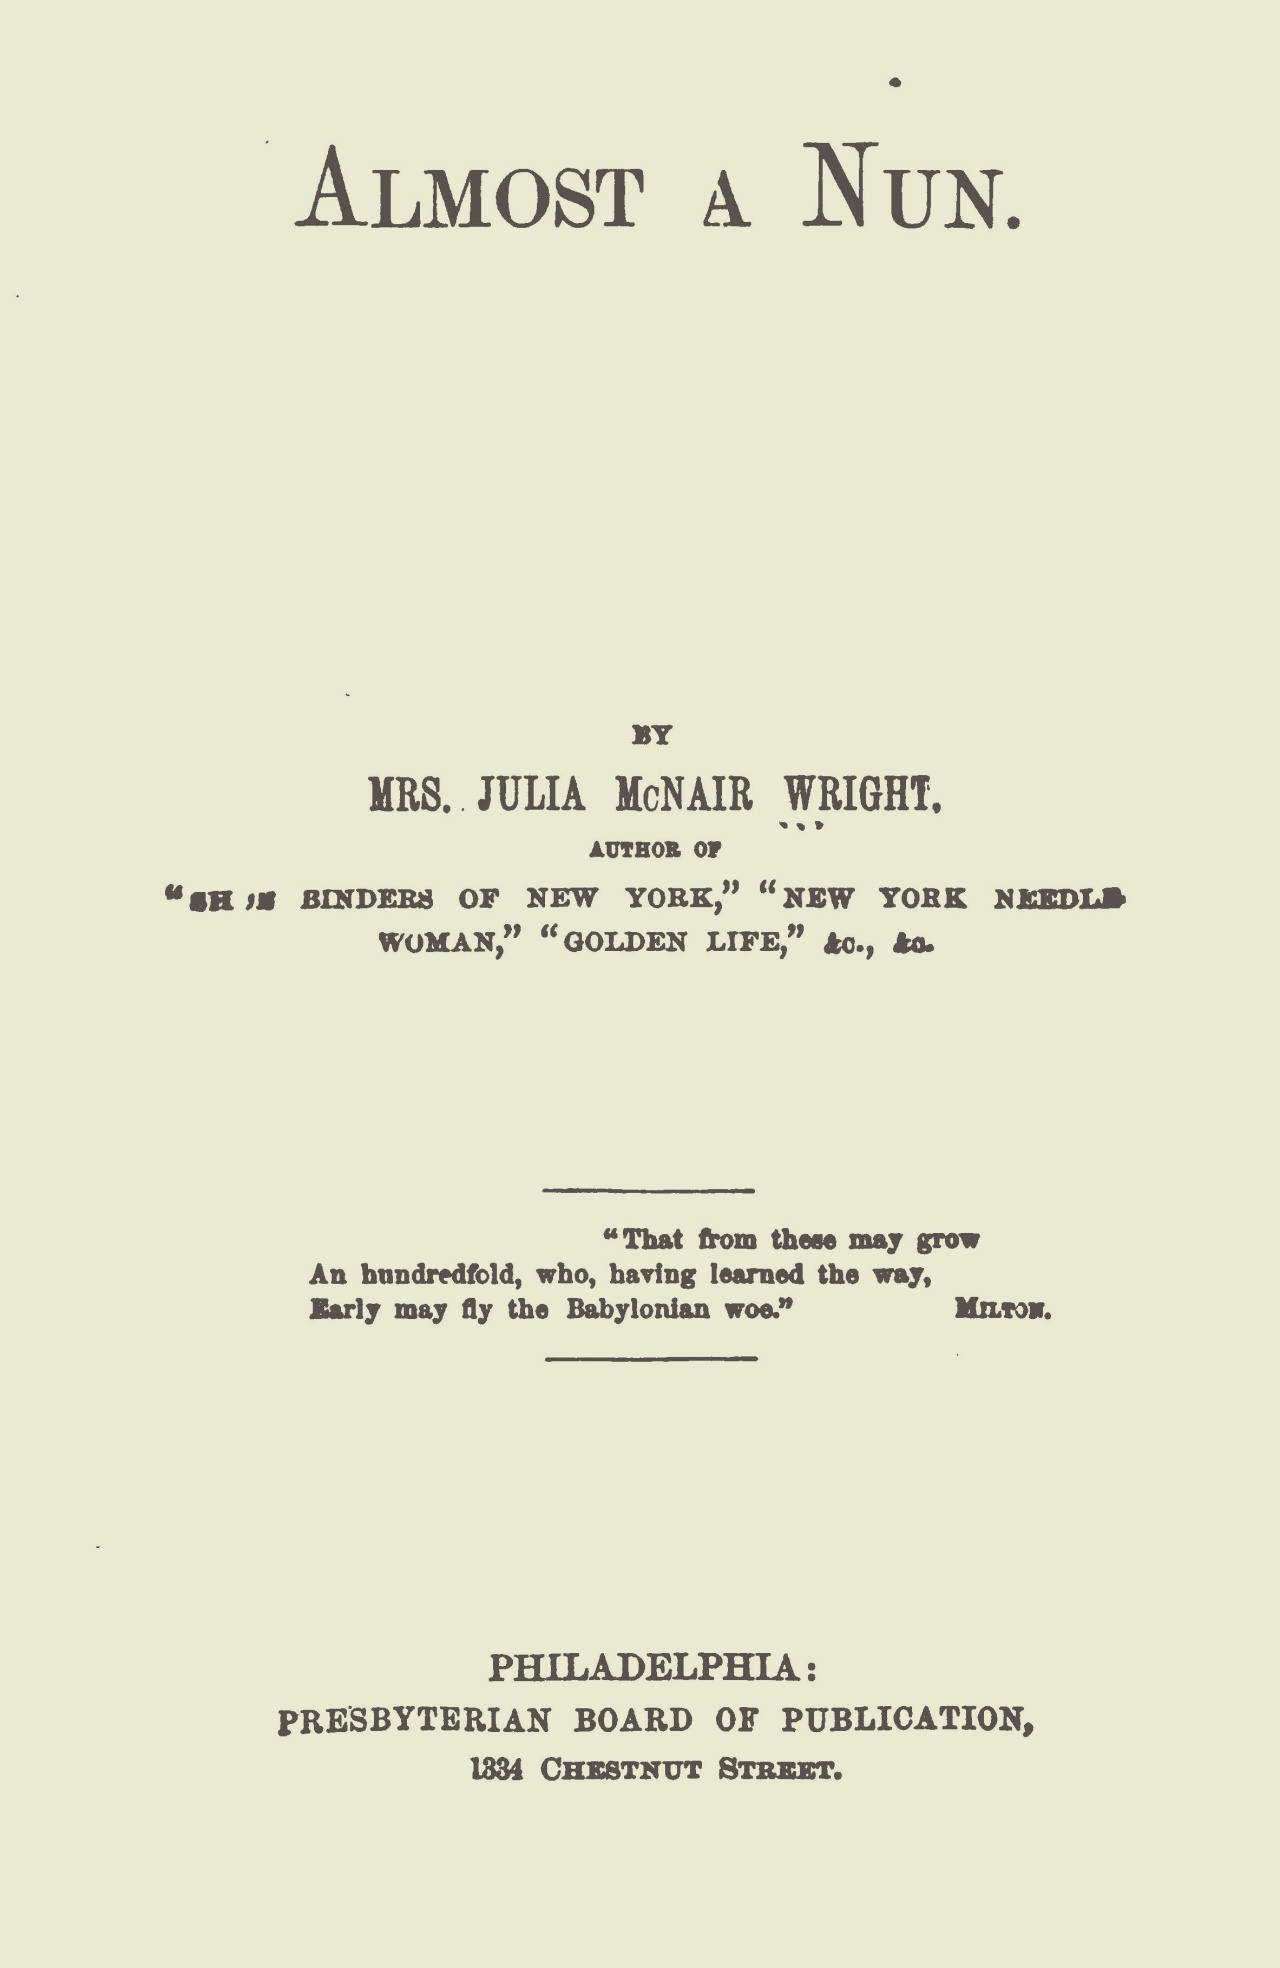 Wright, Julia McNair, Almost a Nun Title Page.jpg